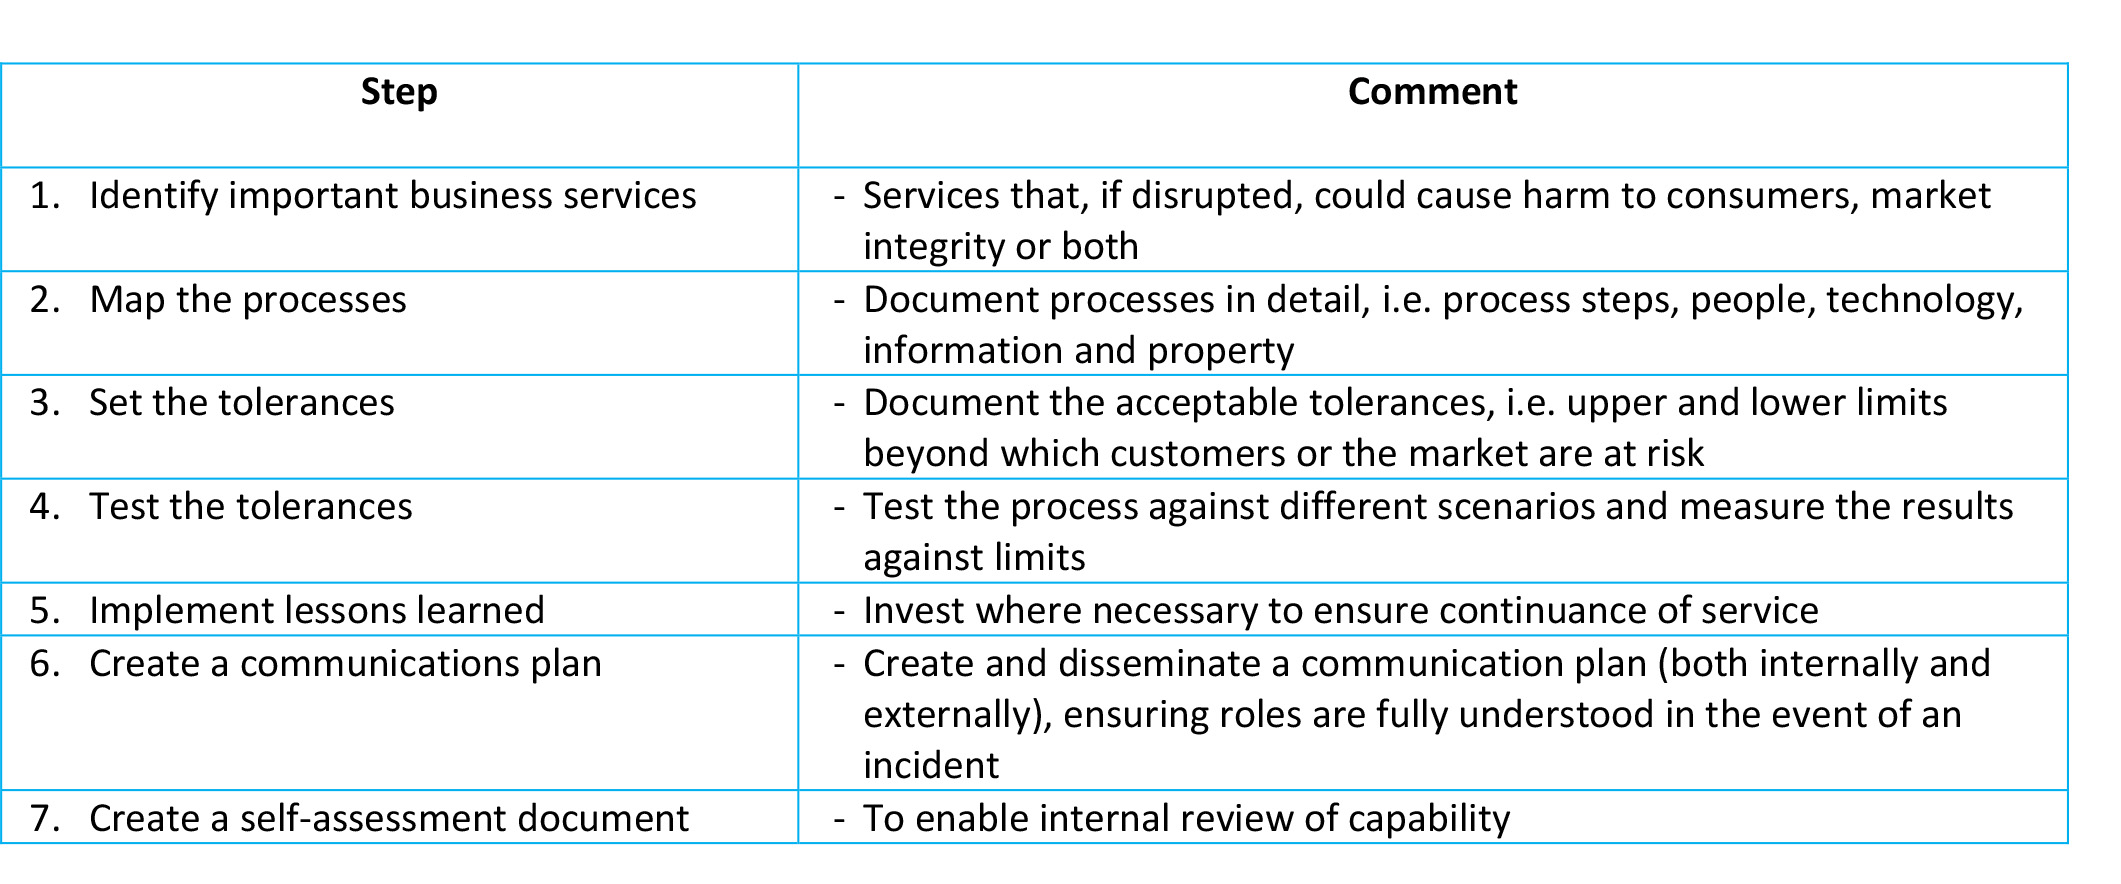 Table of the 7 steps of operational resilience